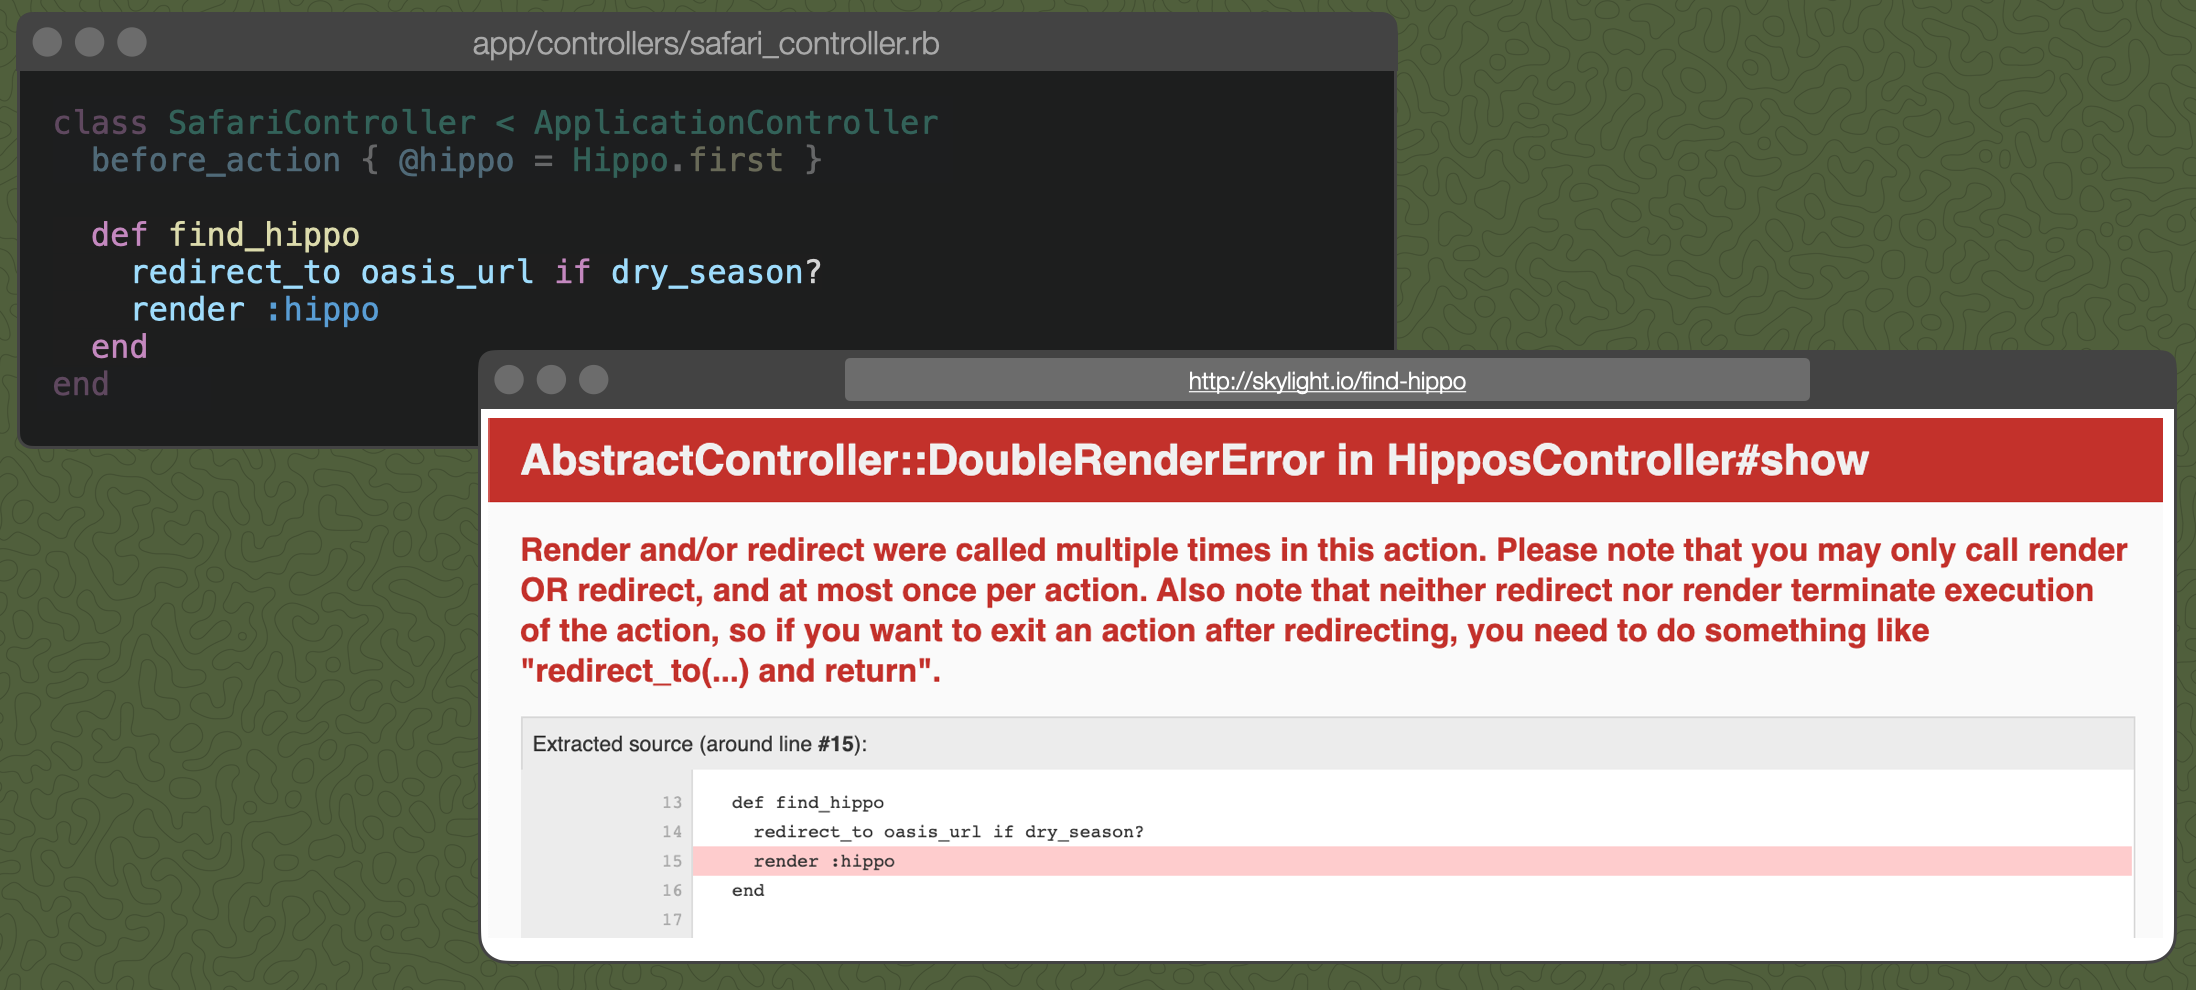 The find_hippo controller action with redirect_to oasis_url if dry_season? followed by render :hippo. Also, a screenshot of the Rails Double Render Error.